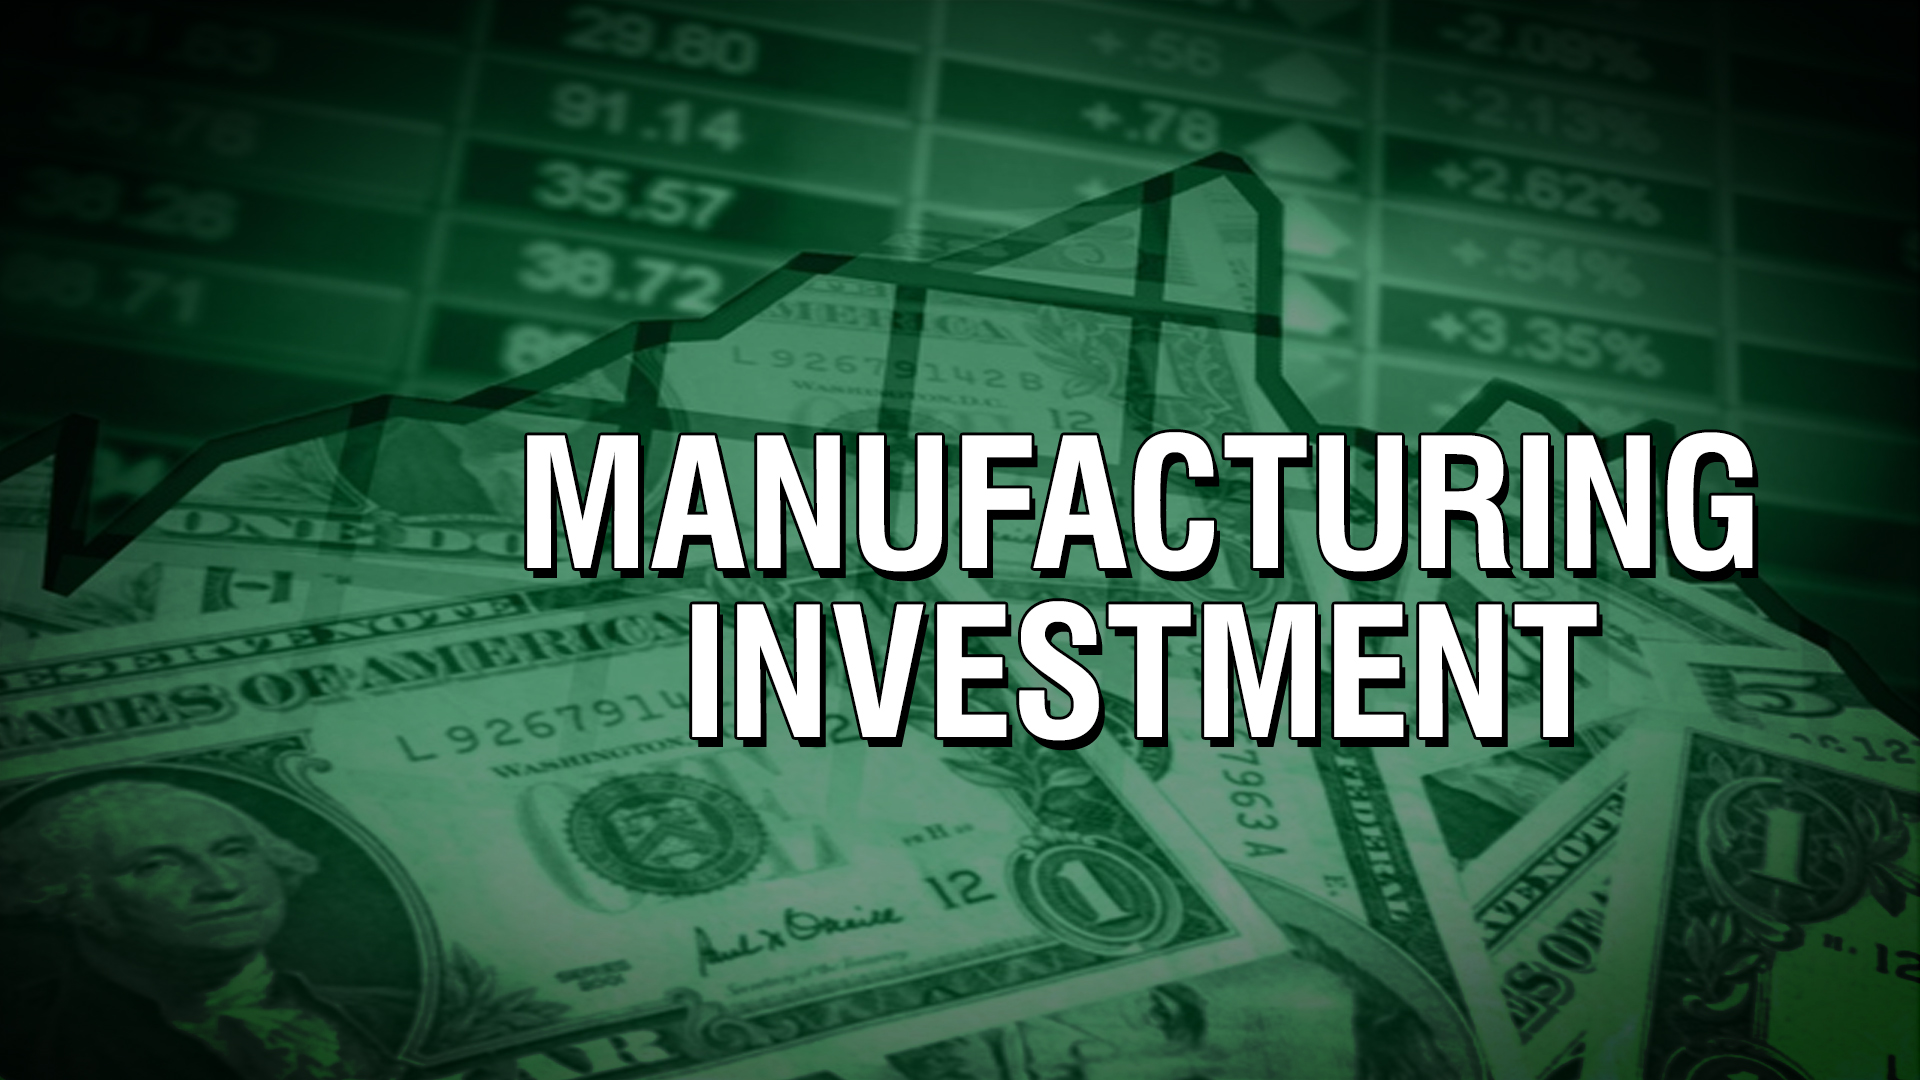 fbam-manufacturing-investment-1